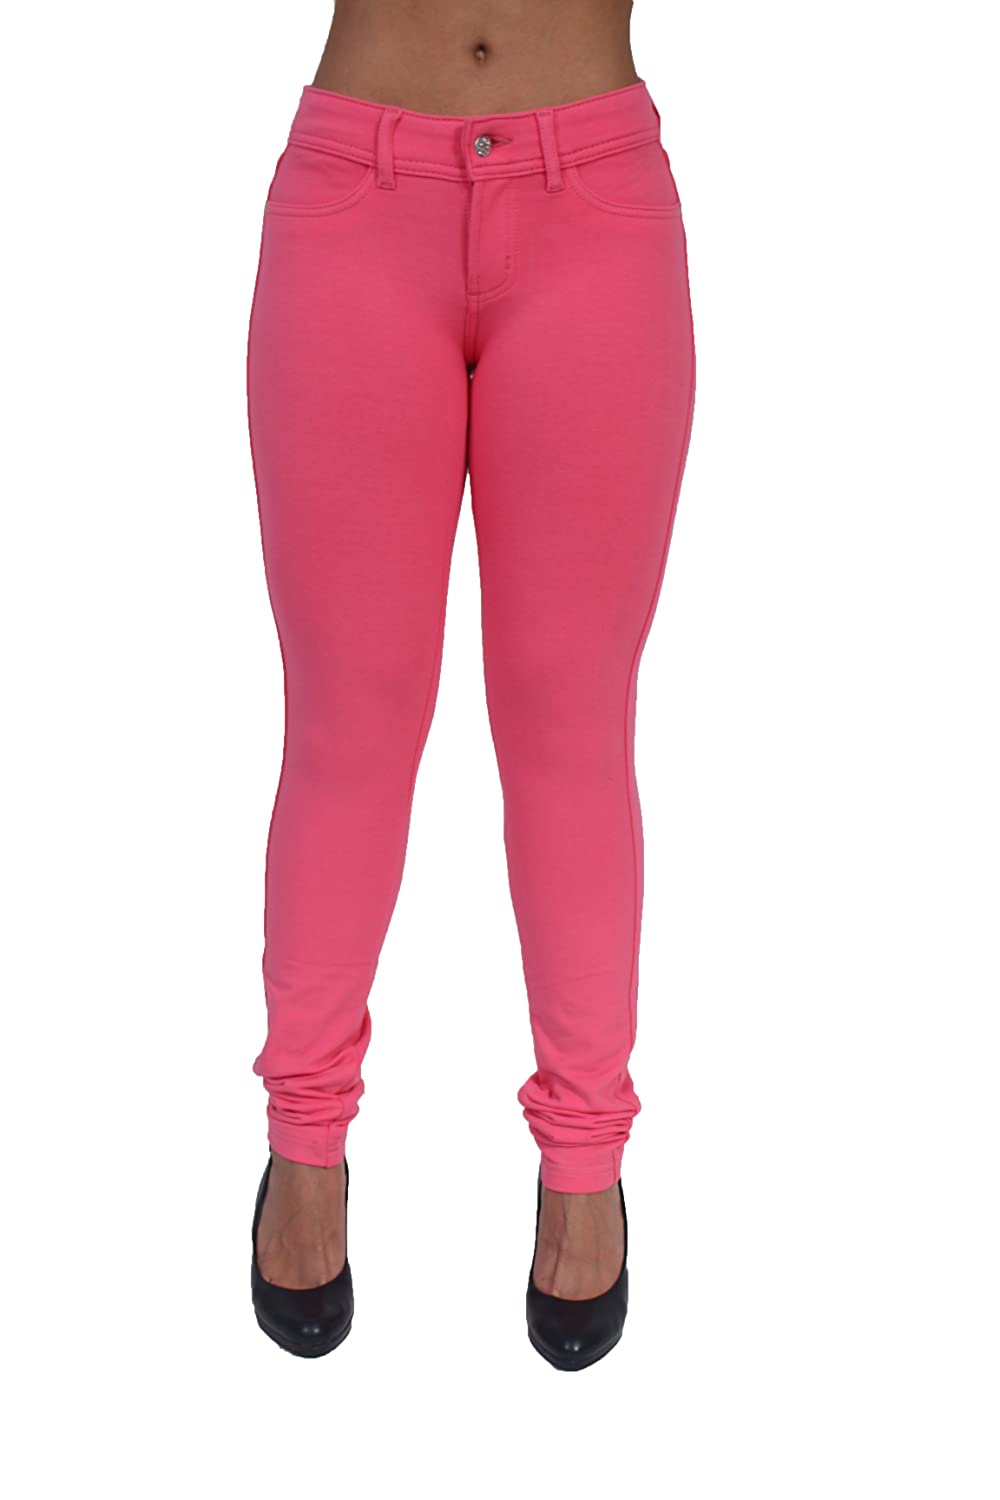 Basic Brazilian Cut Sexy French Terry Moleton Skinny Pants in Hot Pink JW-2121HPNK